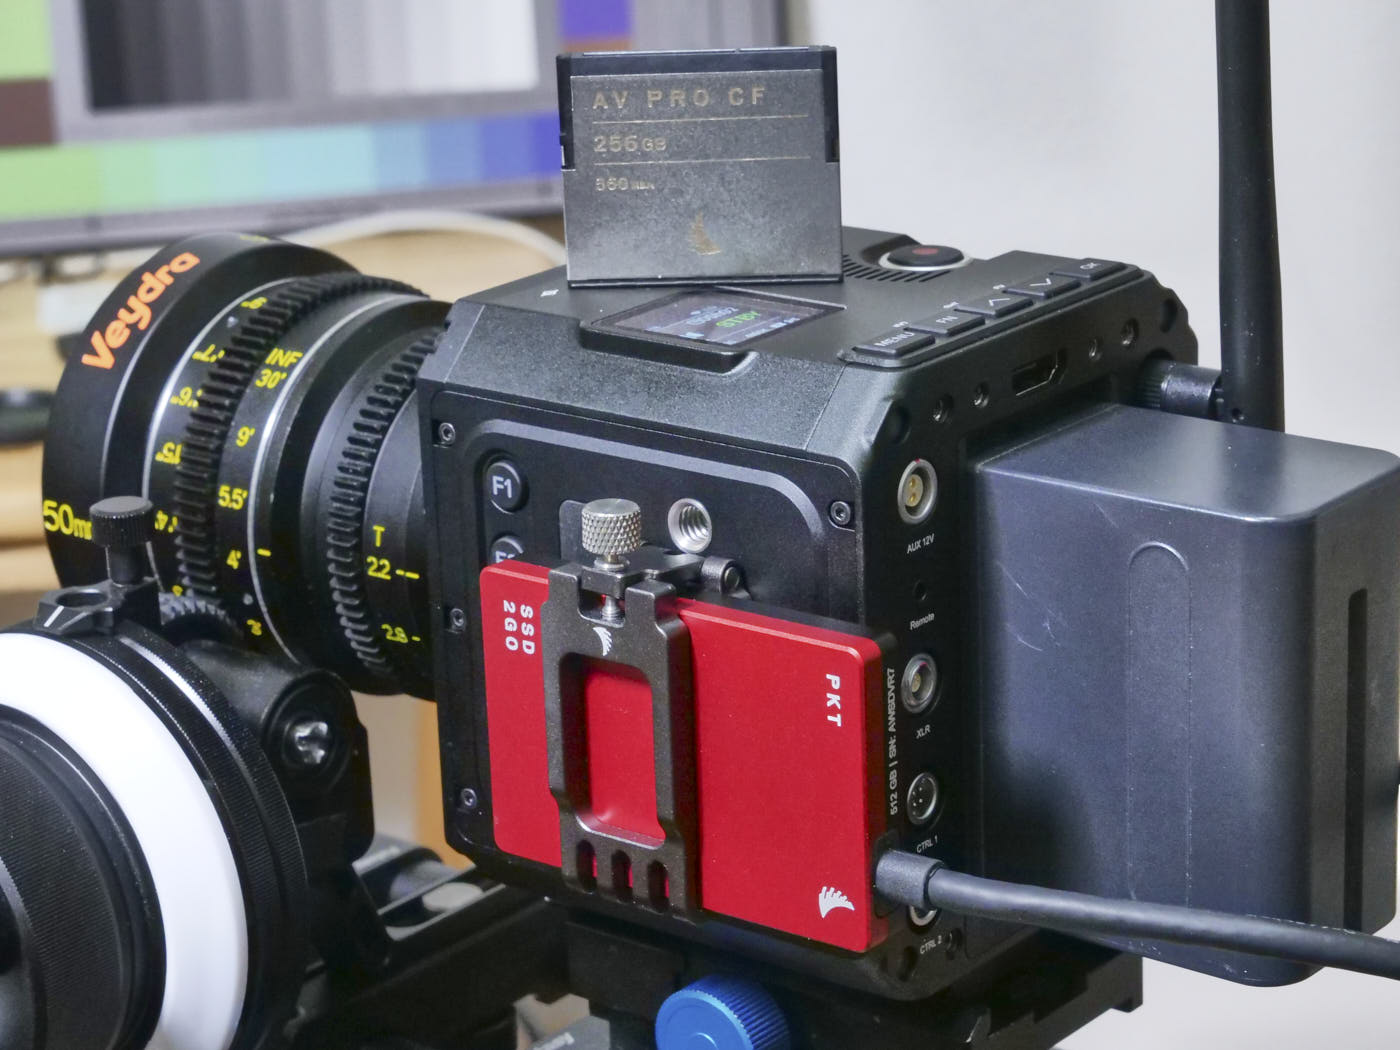 Z Cam E2-M4 with Angelbird CFast card and SSD with external mount